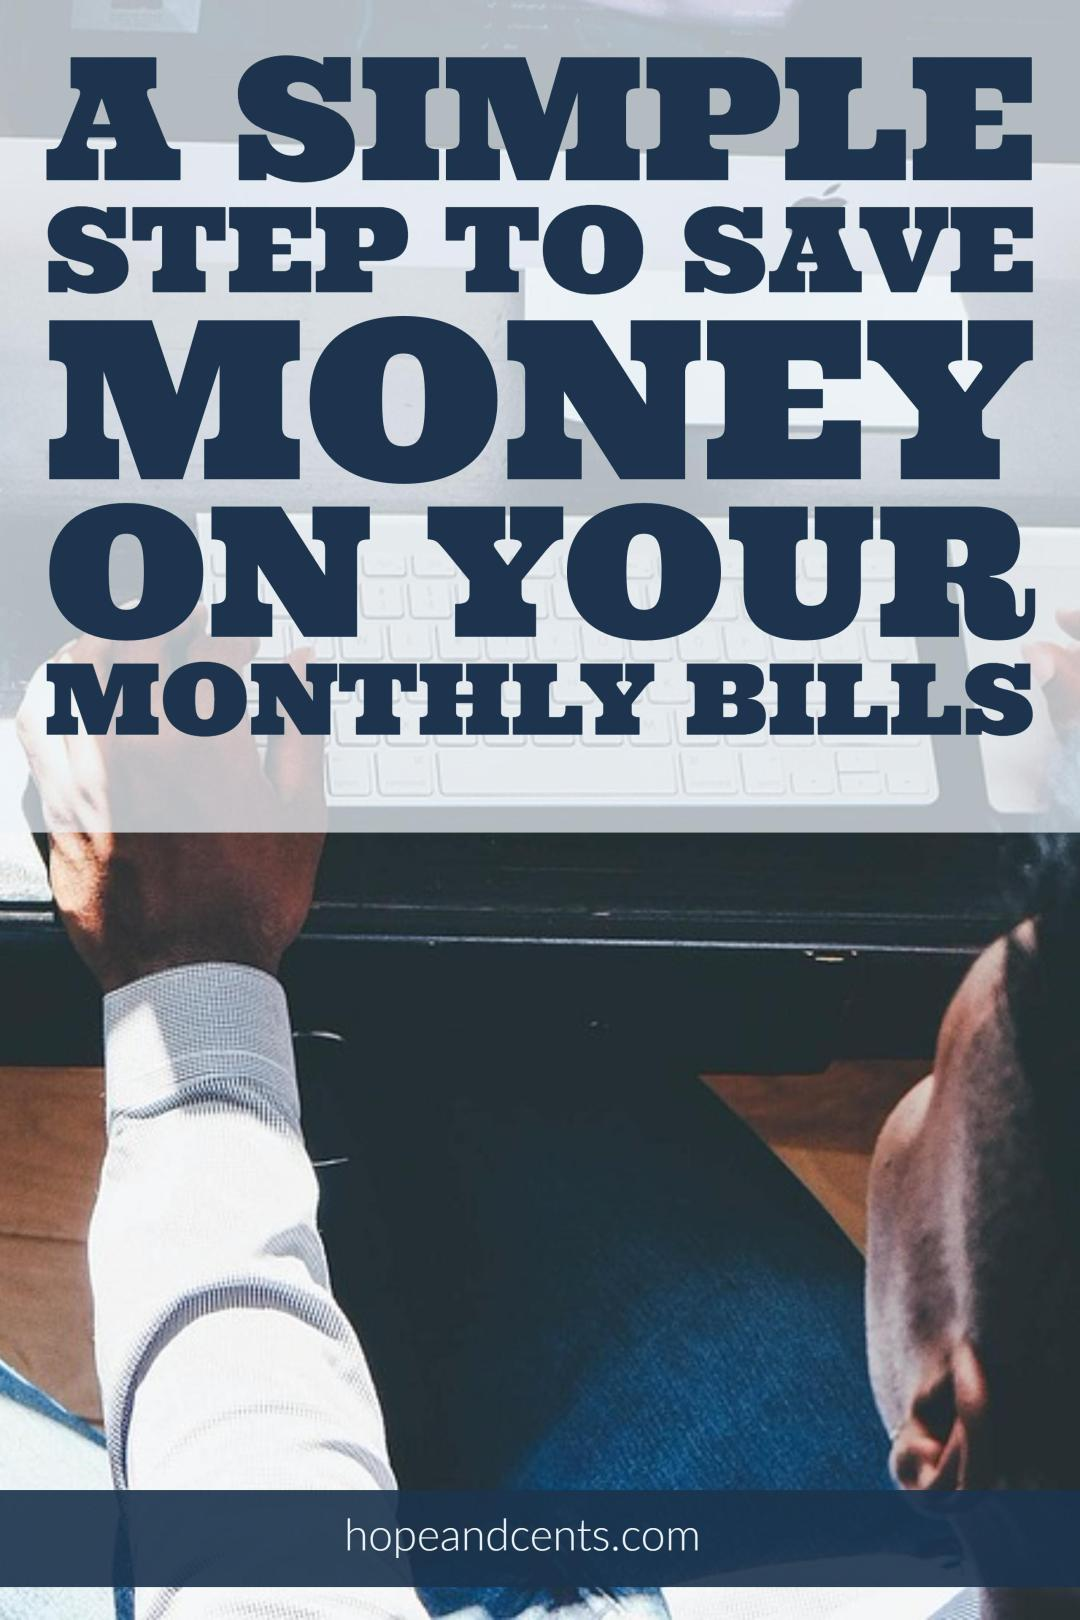 Are you looking to save money on your monthly bills? I love this simple step to take that will save money and stretch my budget further.